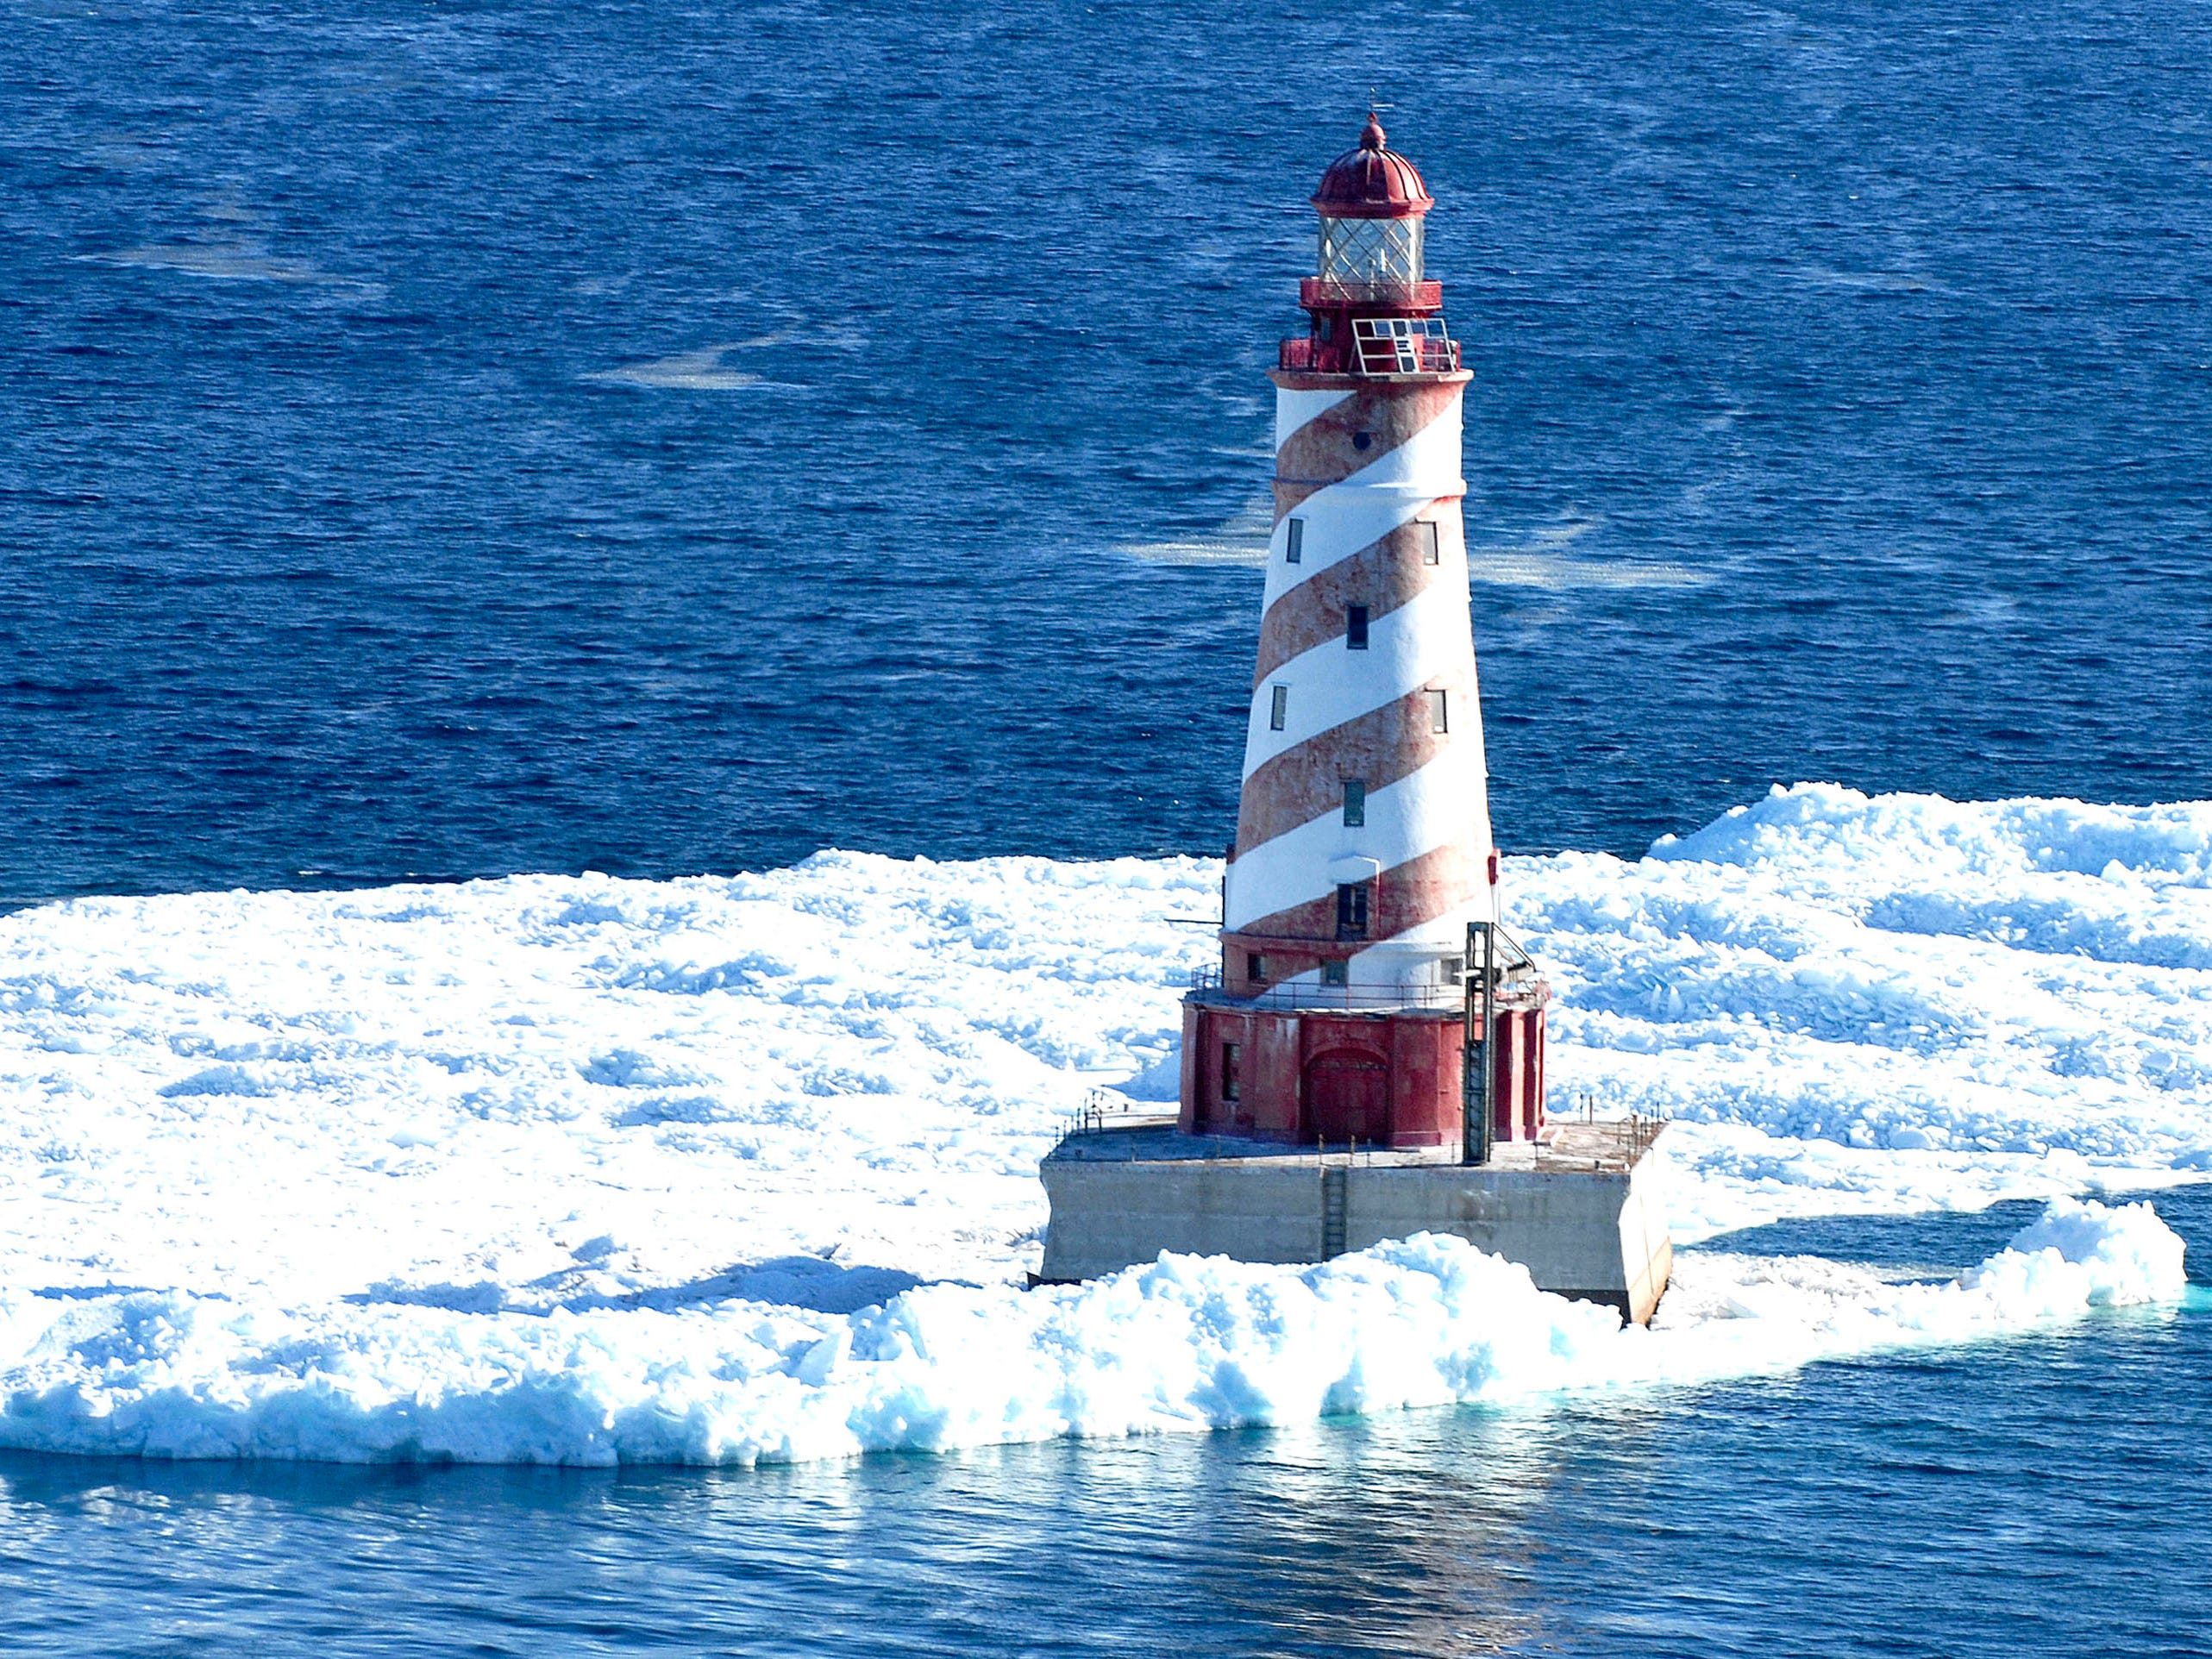 Ice surrounds the White Shoal Lighthouse on March 25, 2011.